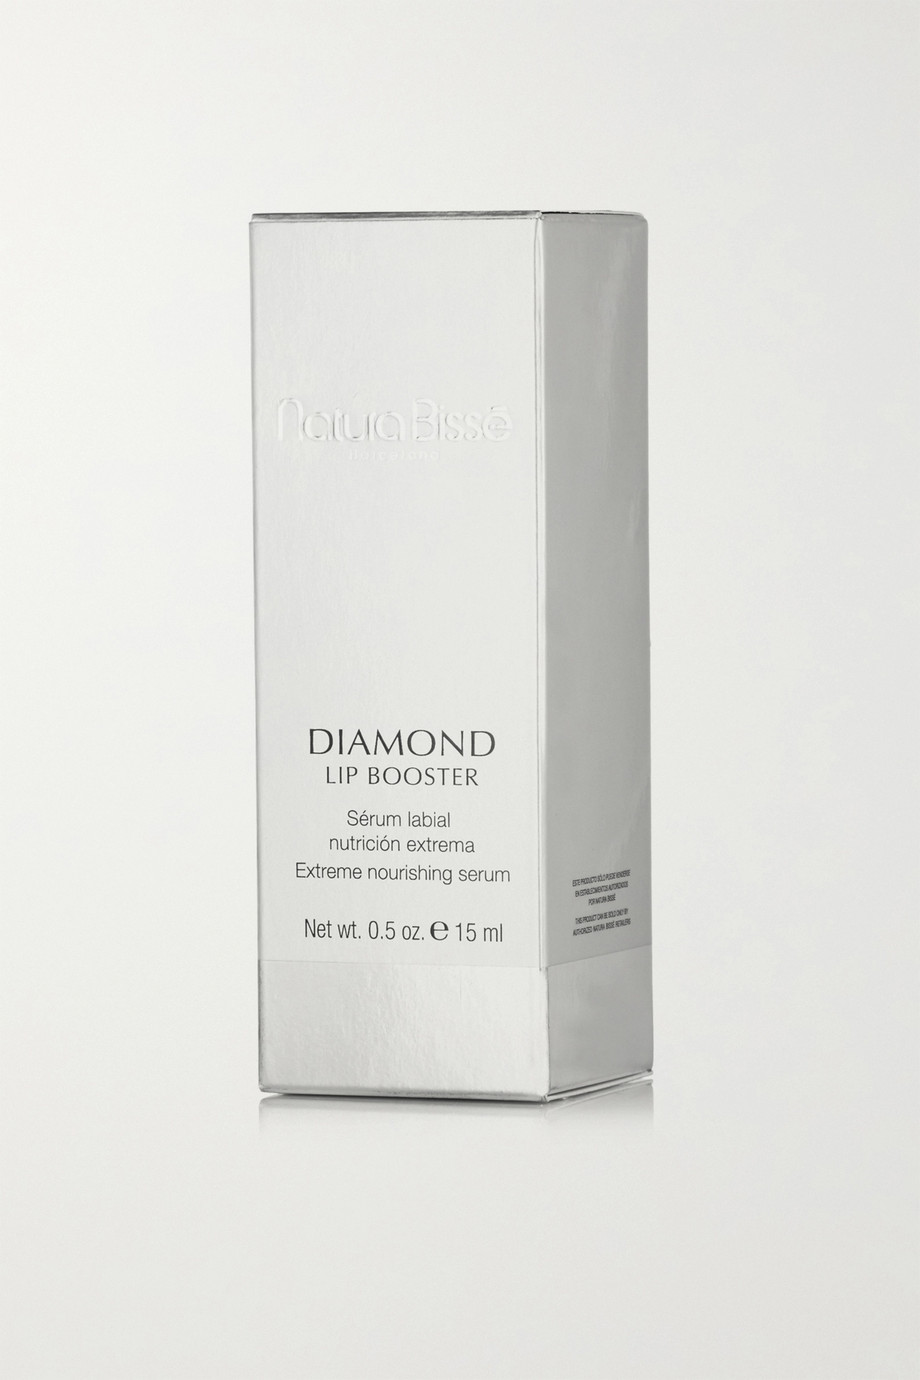 NATURA BISSÉ Diamond Lip Booster, 15ml